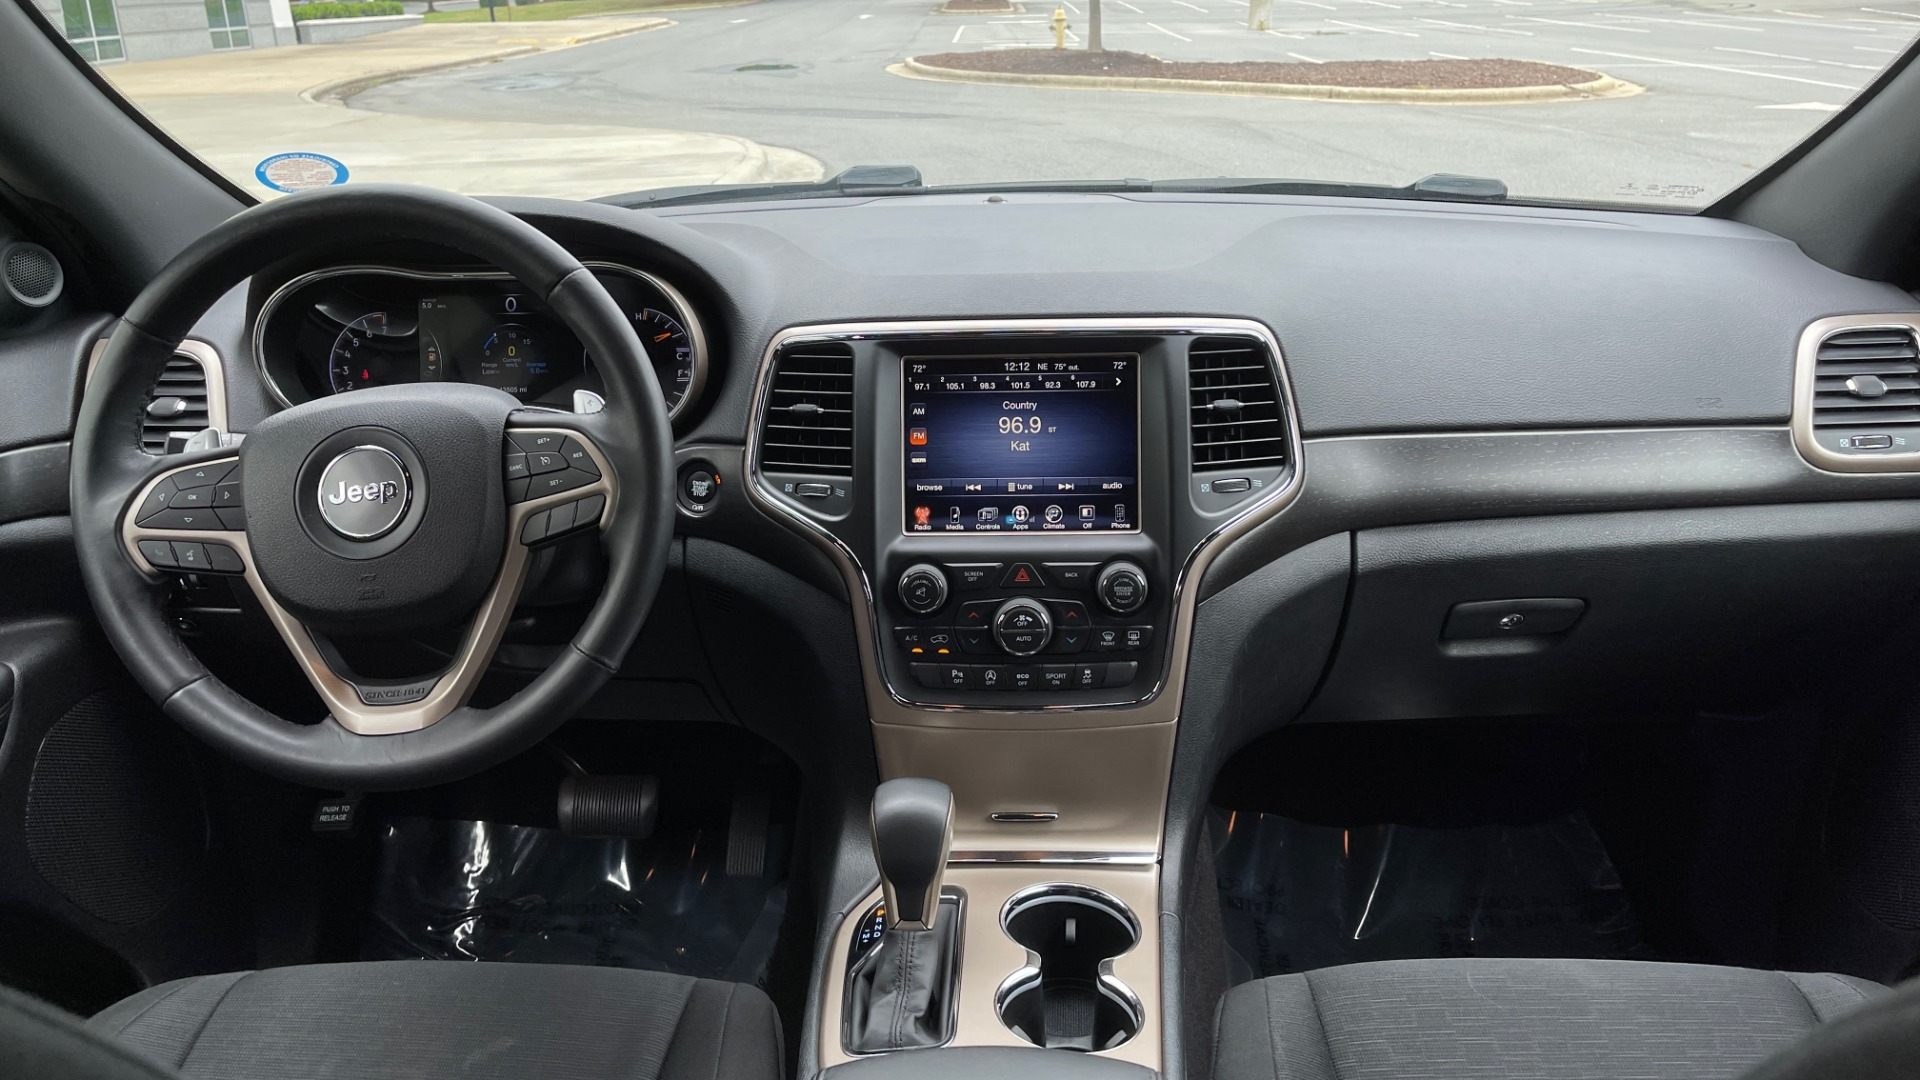 Used 2017 Jeep GRAND CHEROKEE LAREDO E 4X4 / KEYLESS-GO / 8.4IN TOUCH SCREEN / REARVIEW for sale $27,595 at Formula Imports in Charlotte NC 28227 48